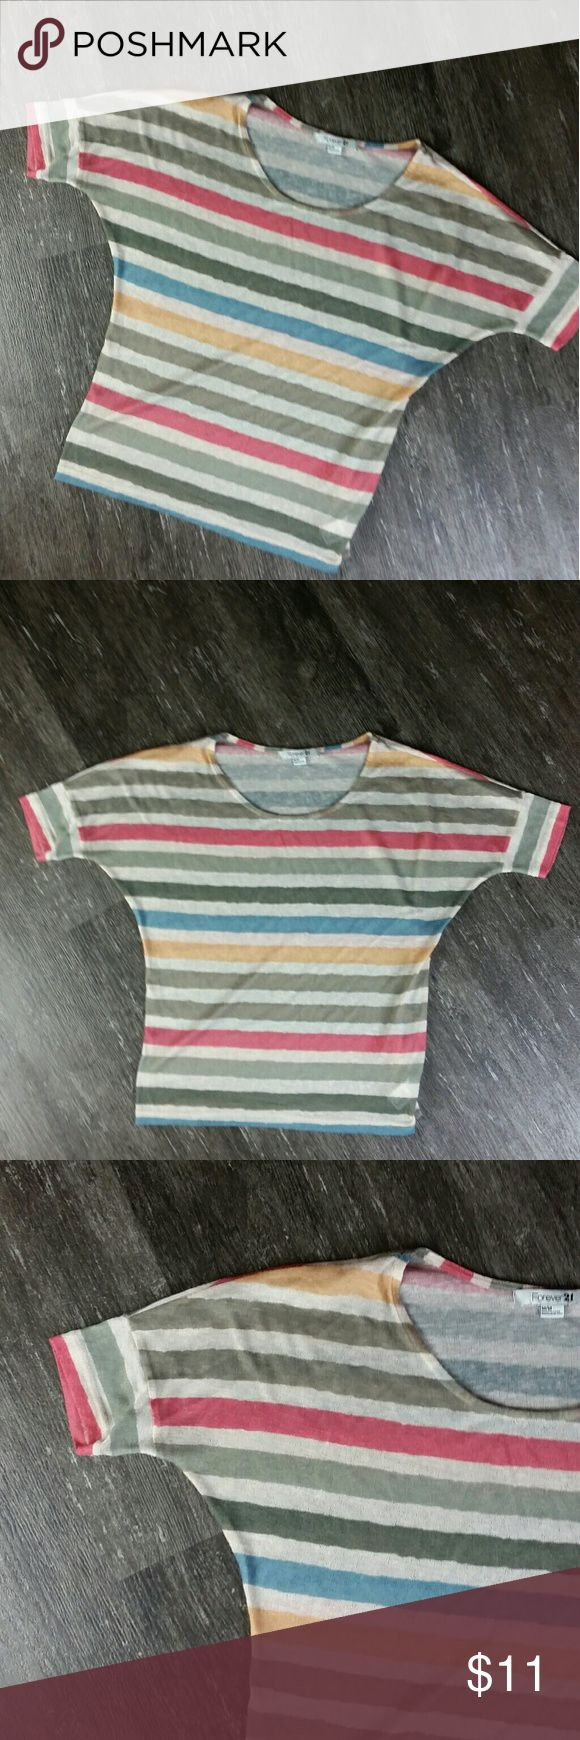 Springy Stripes E20 Forever 21 Wide Stripe Short Sleeve Knit Shirt Blue Yellow Beige Pink Medium Batwing, Soft, Stretch, Comfort, Cute  23 INCH TOTAL LENGTH MEASURED CENTER BACK FROM NECK TO BOTTOM OF SHIRT 19 INCH LENGTH MEASURING SIDE SEAM UNDERARM TO BOTTOM OF SHIRT 48 INCH BUST Forever 21 Tops